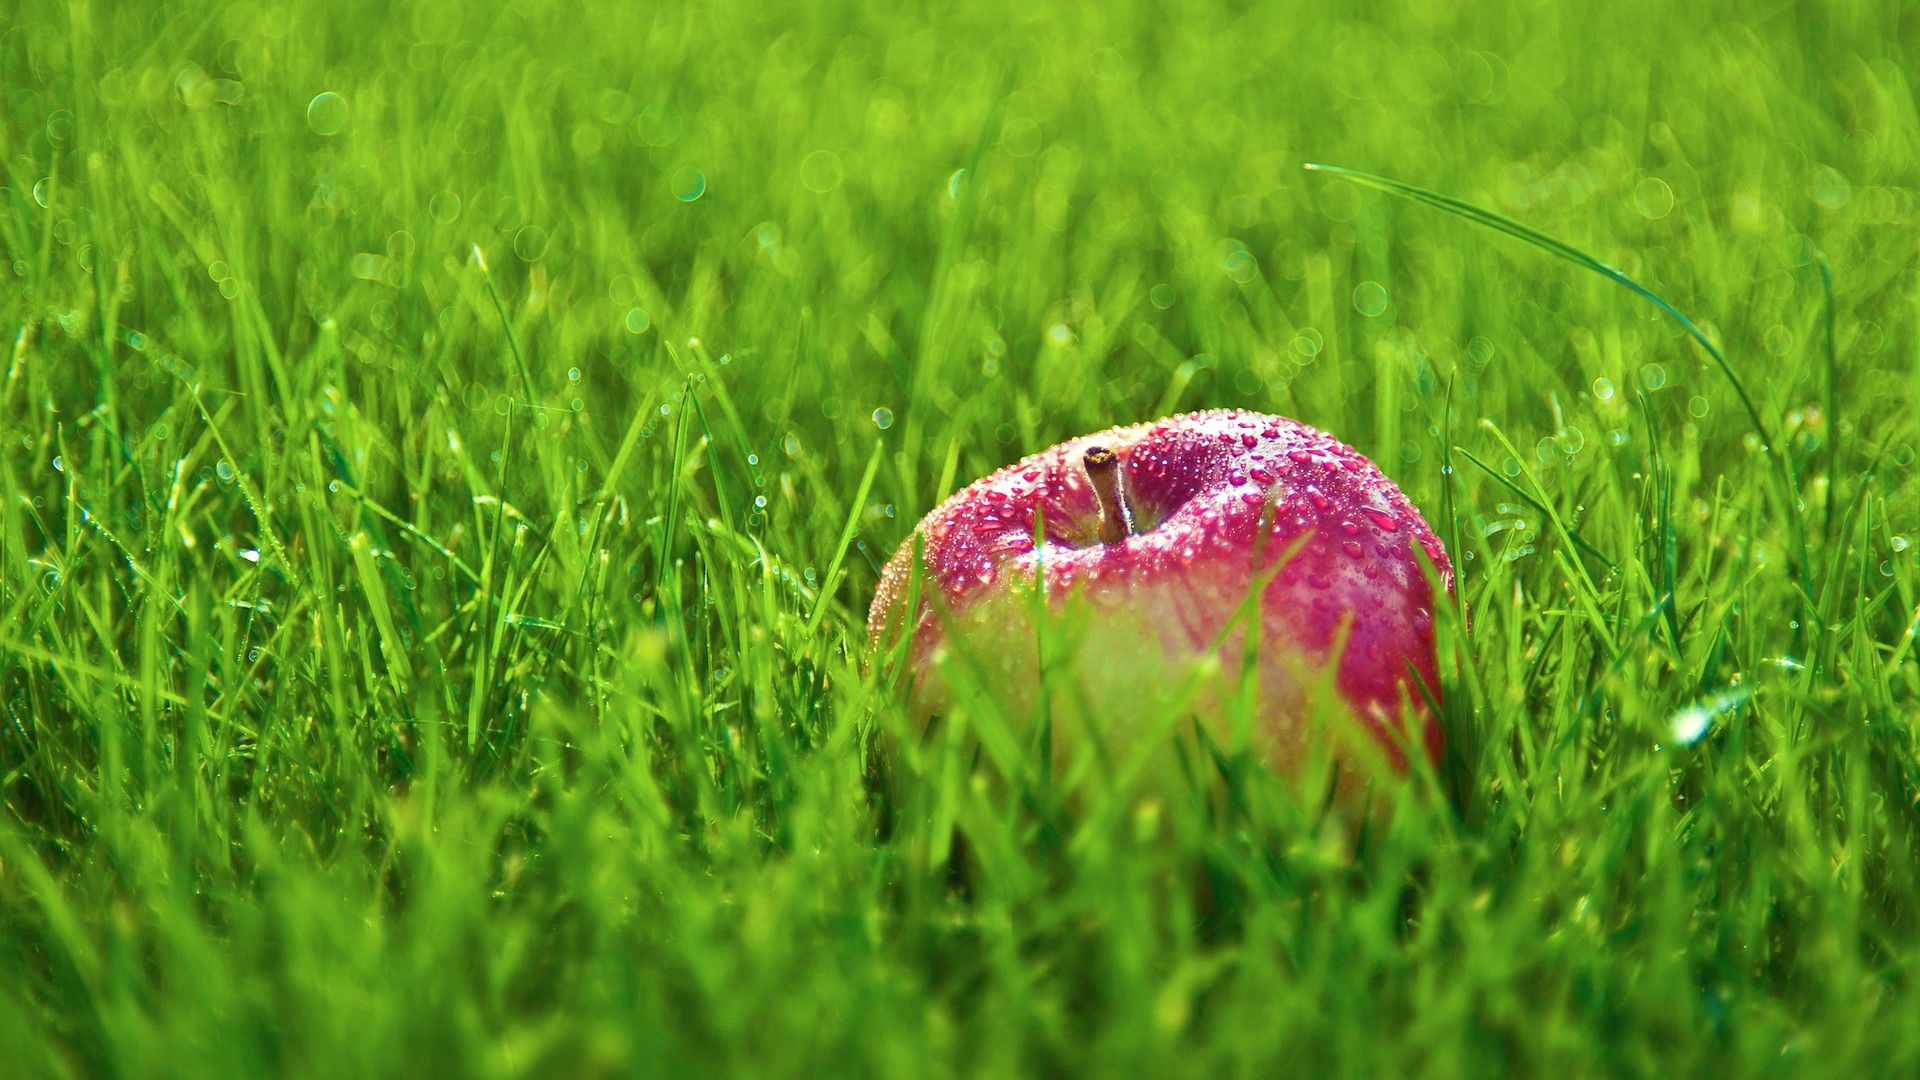 131970 download wallpaper Apple, Food, Grass, Drops screensavers and pictures for free